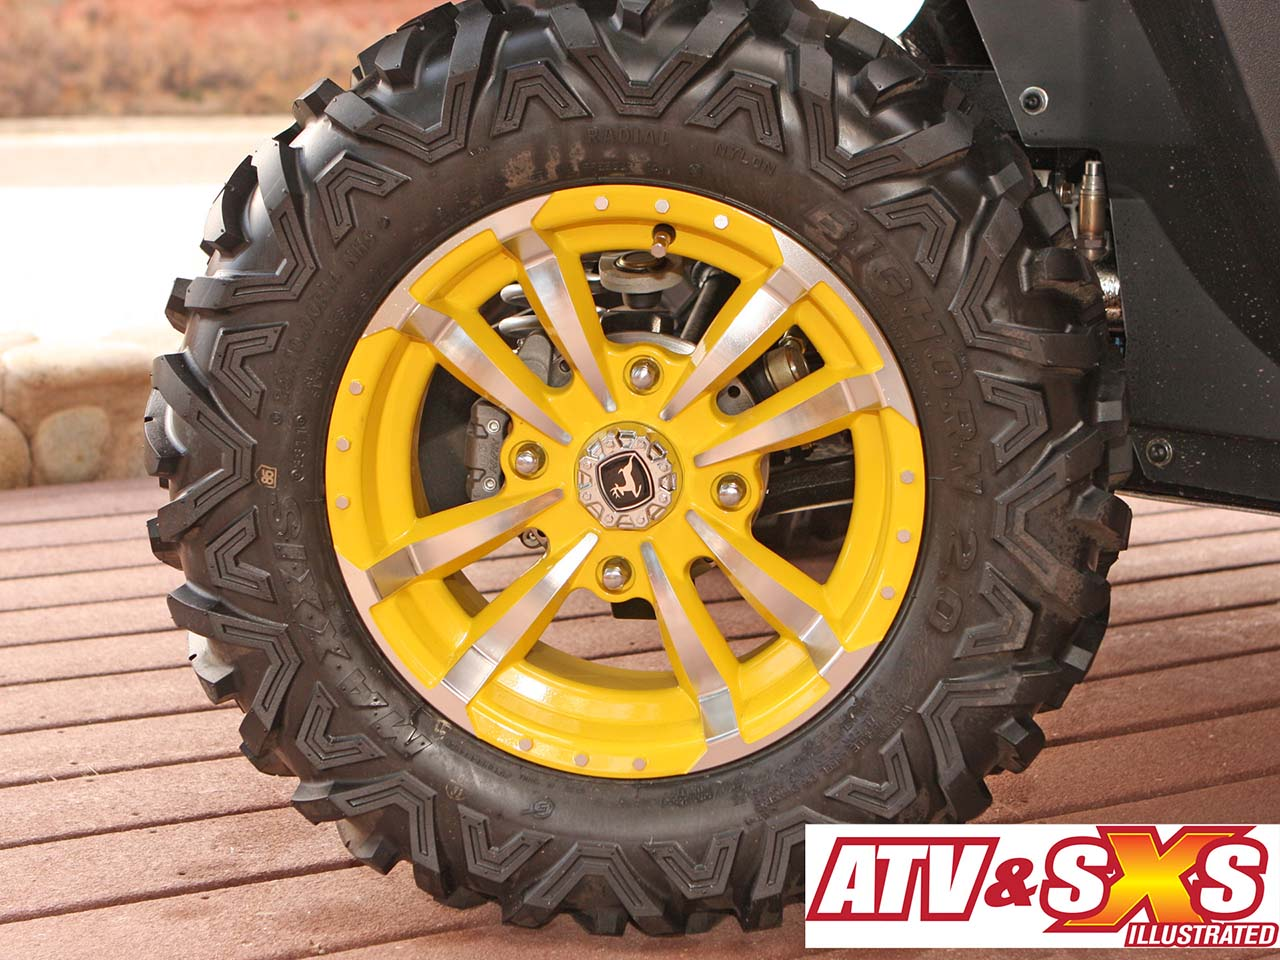 The 2013 John Deere Gator Rsx 850i Atv Illustrated